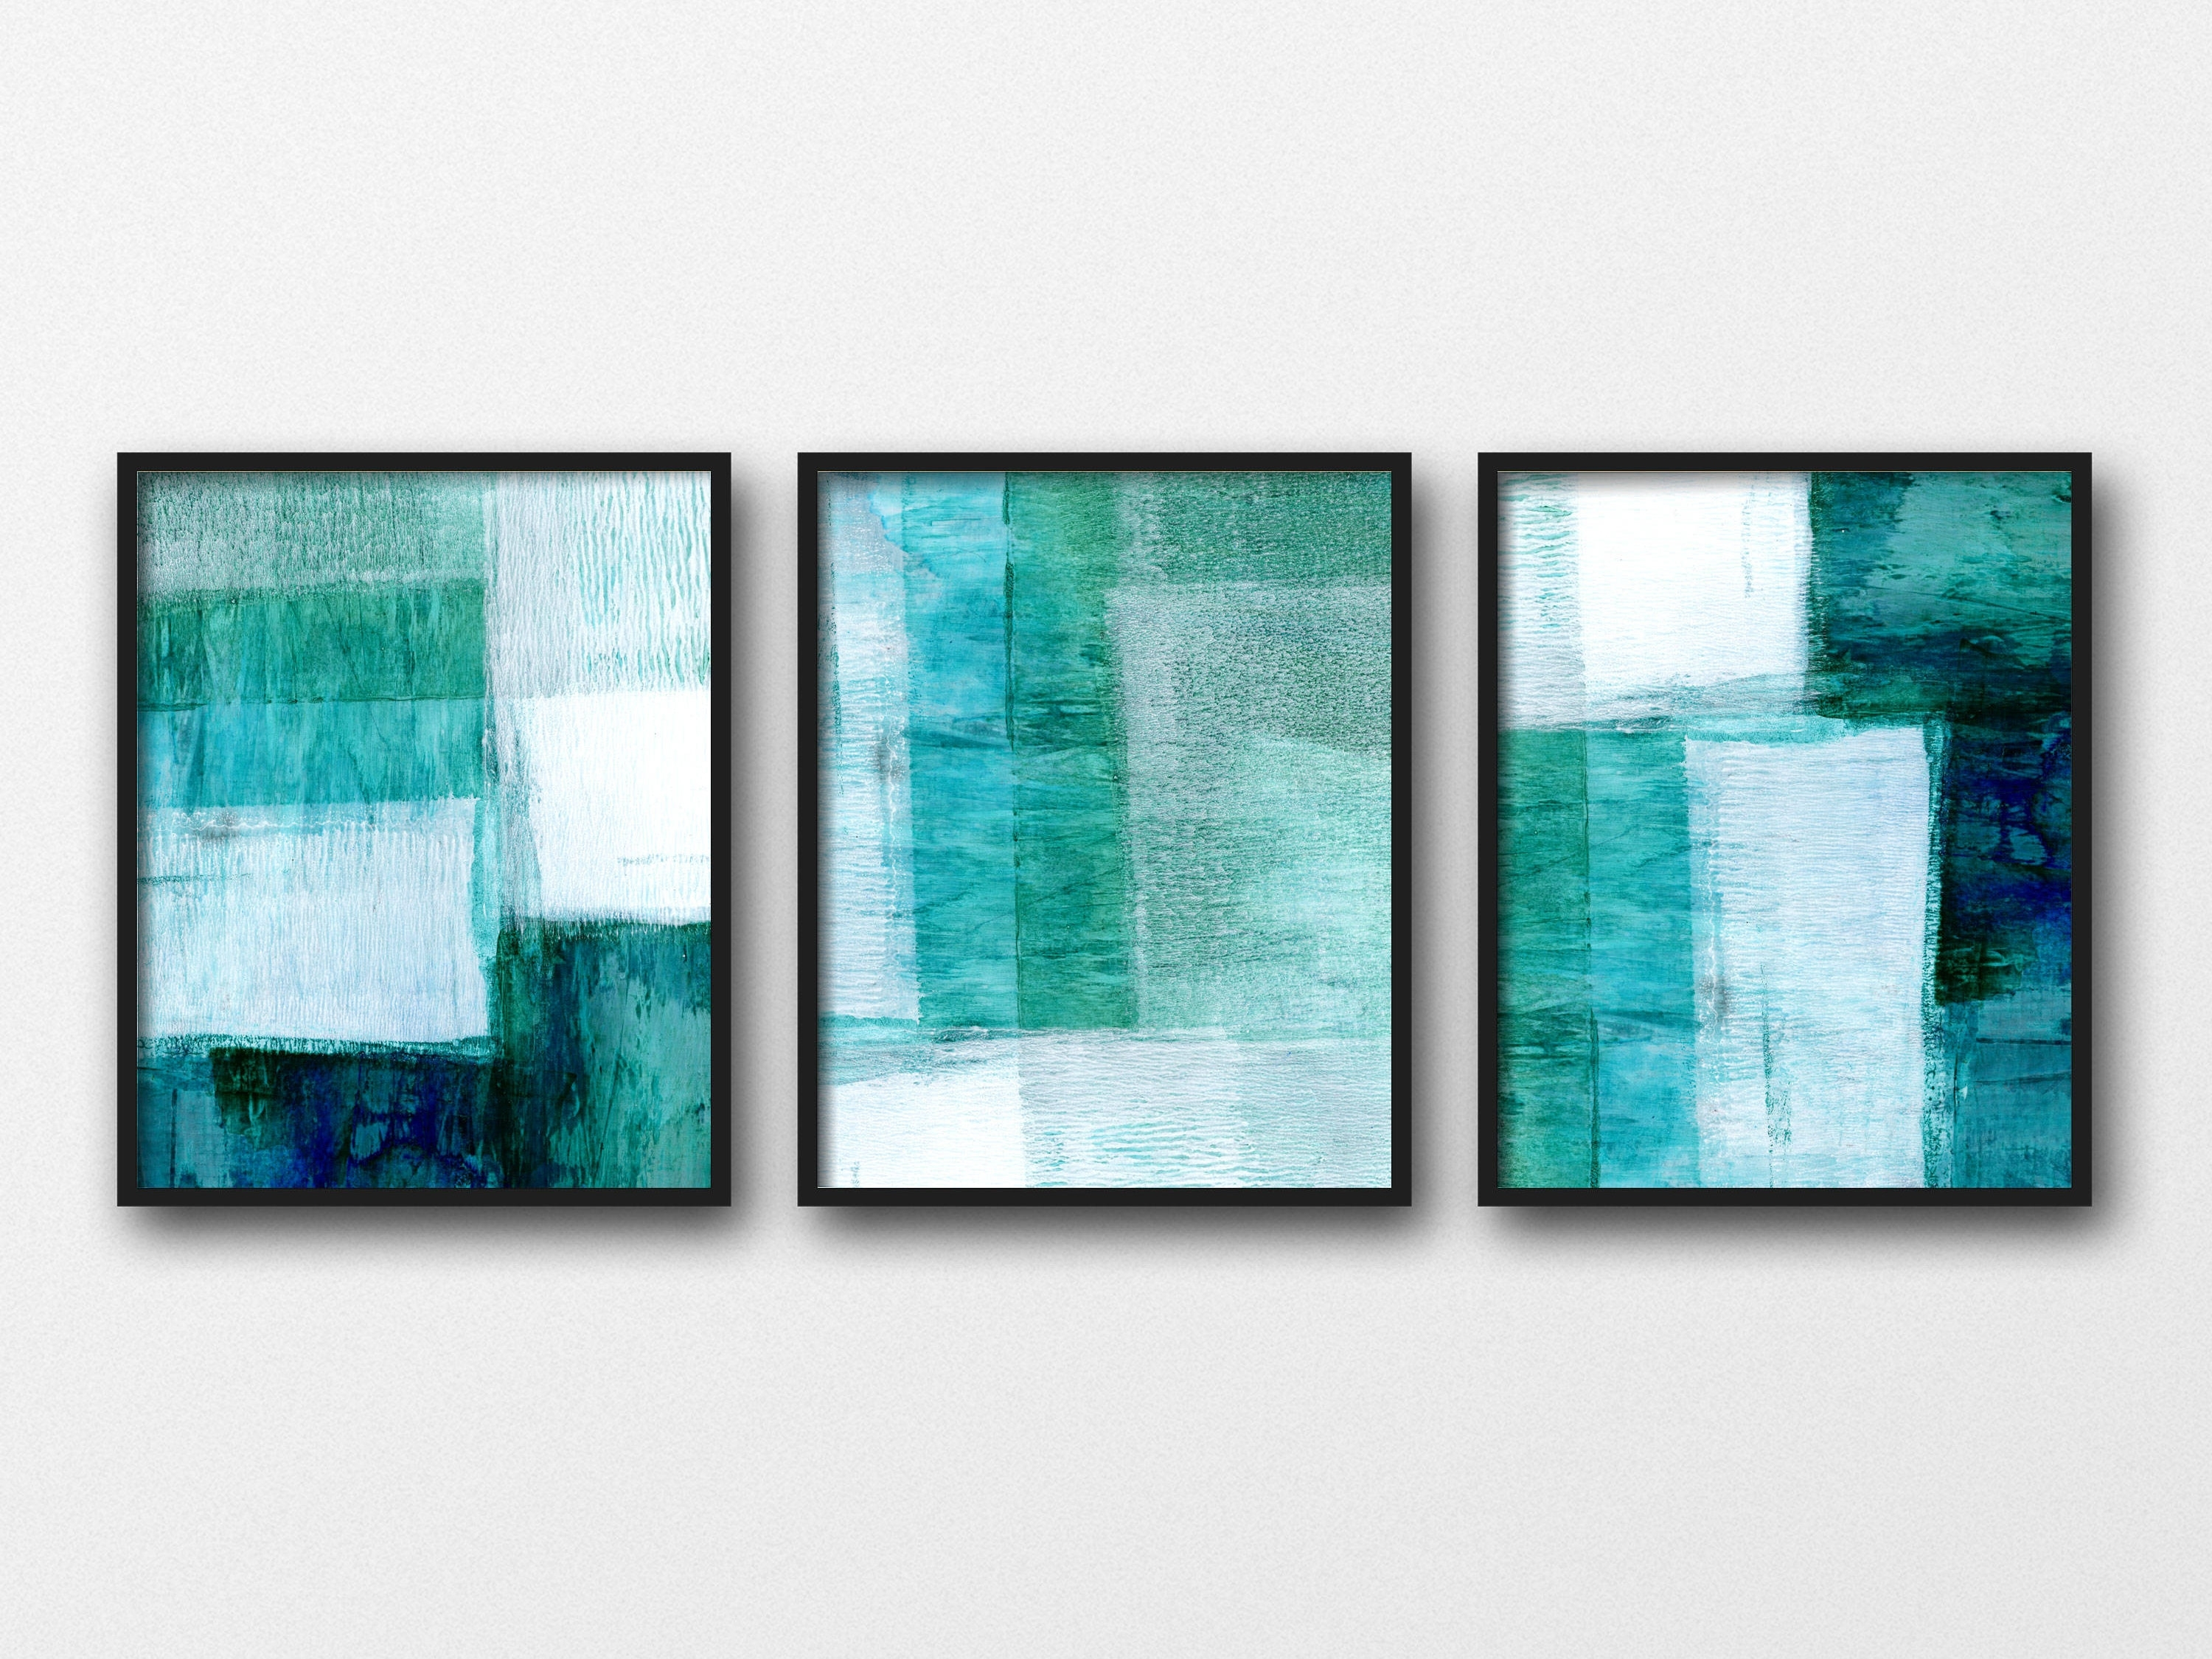 Set Of 3 Prints, Abstract Art, Scandinavian Prints, Geometric Art Intended For Recent Blue Abstract Wall Art (View 18 of 20)